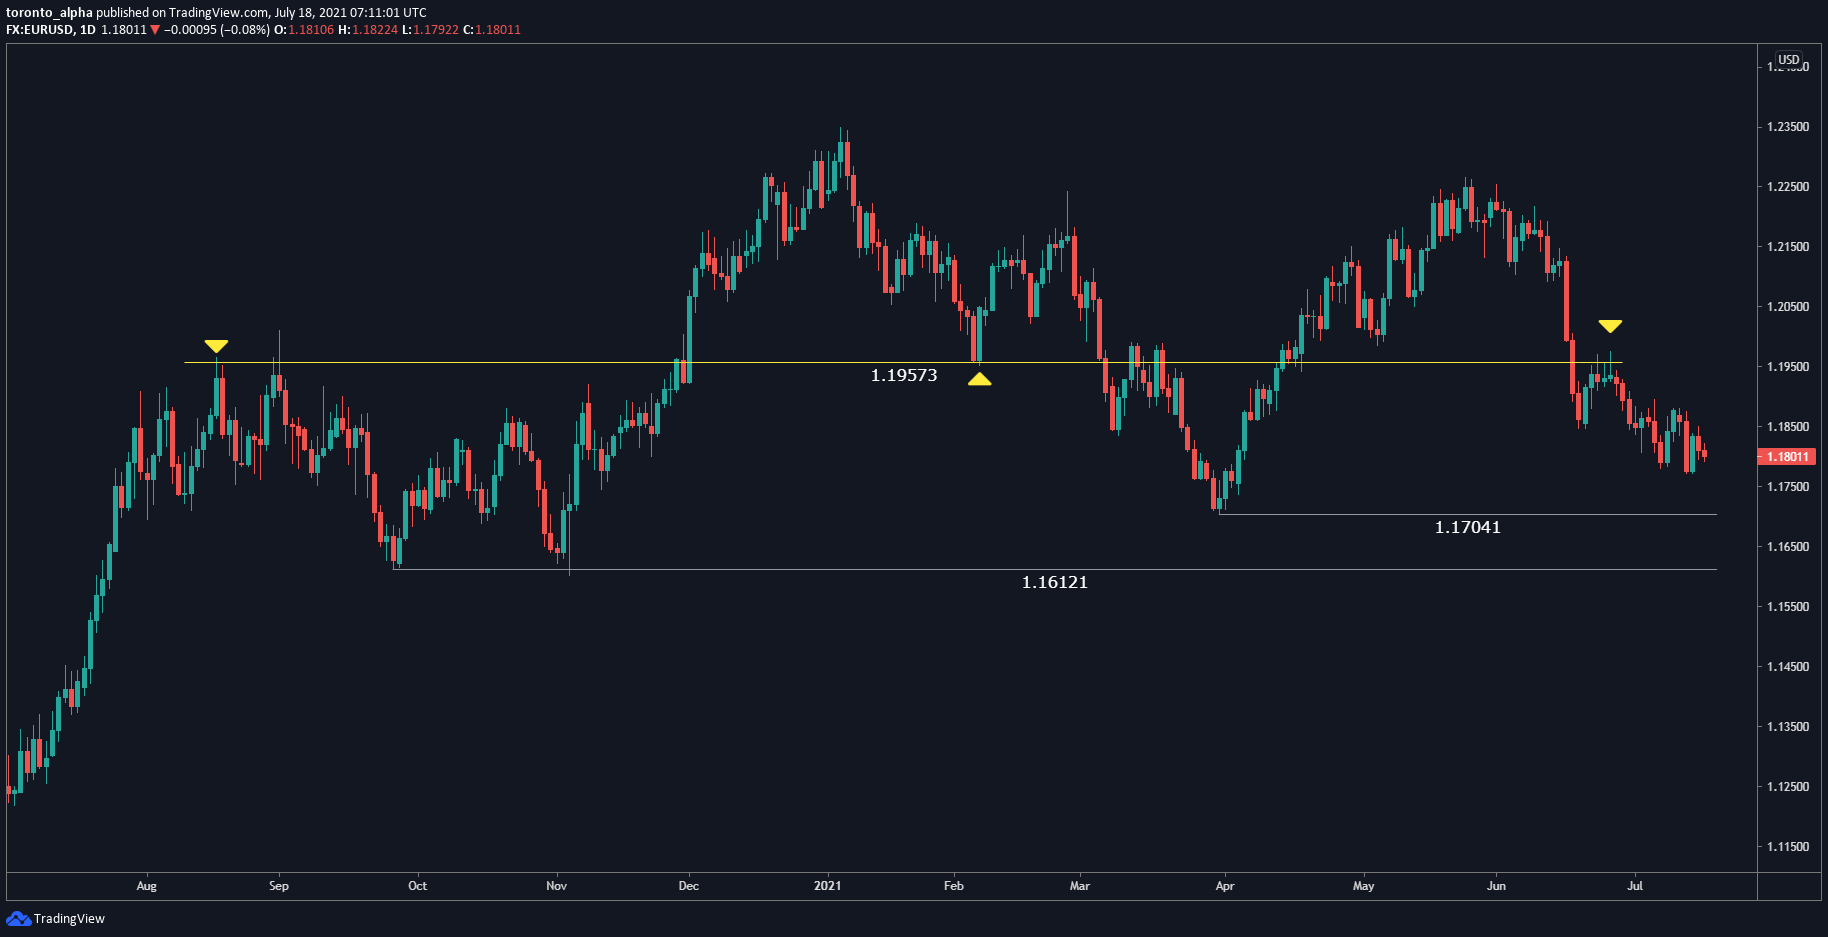 EUR / USD daily chart